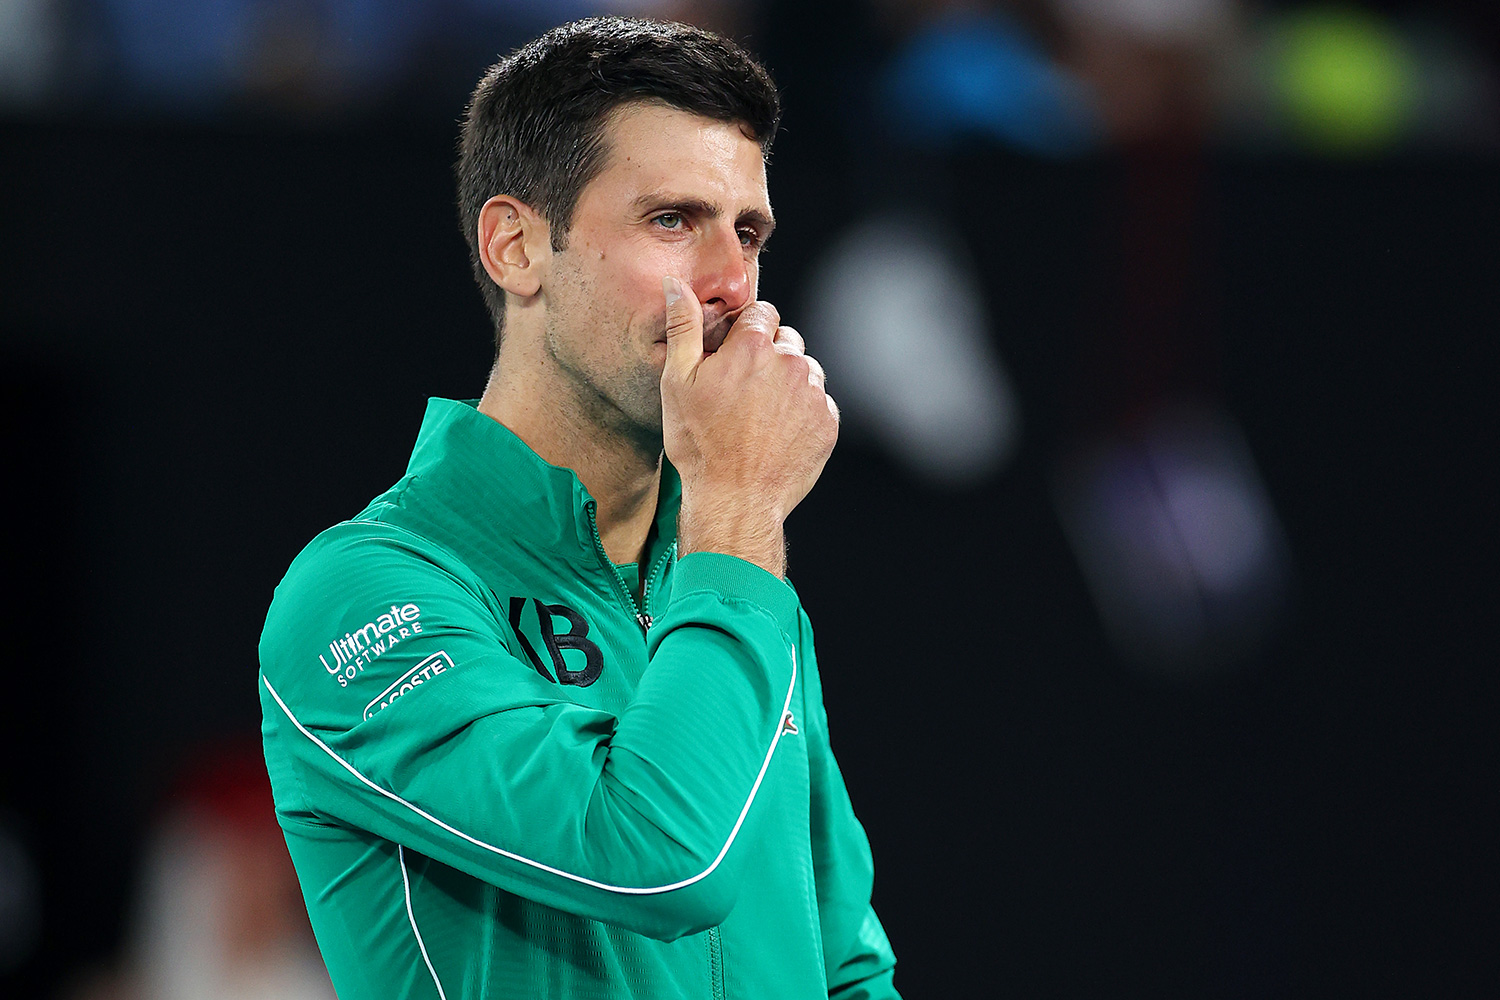 Novak Djokovic of Serbia tears up as he talks about Kobe Bryant after winning his Men's Singles Quarterfinals match against Milos Raonic of Canada on day nine of the 2020 Australian Open at Melbourne Park on January 28, 2020 in Melbourne, Australia